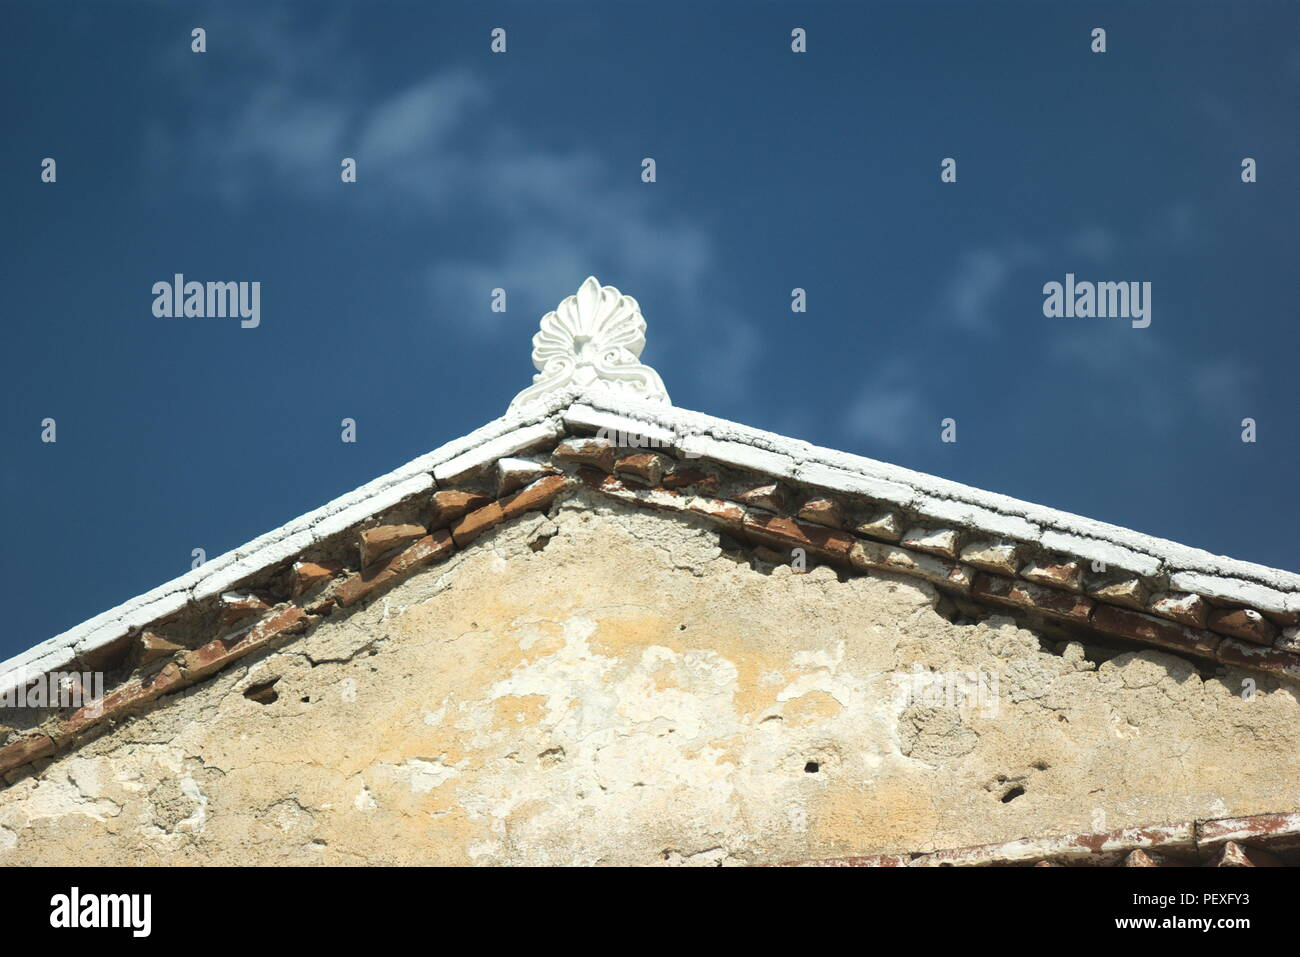 Greece, the island of Ios.  An old building at the harbor.  The stucco contrasting to the deep blue sky - Stock Image